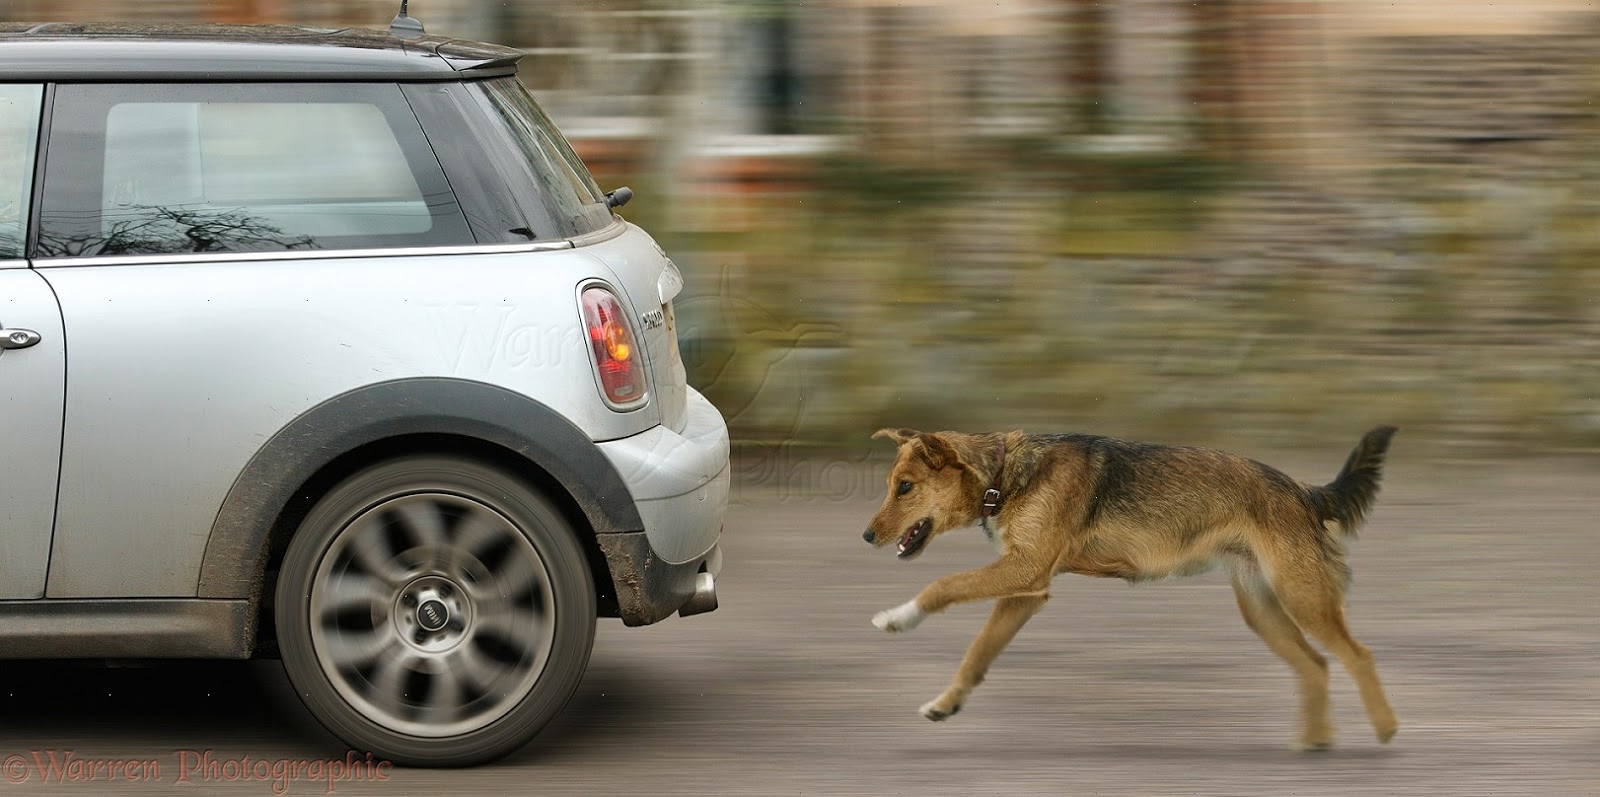 38035-Dog-chasing-a-car